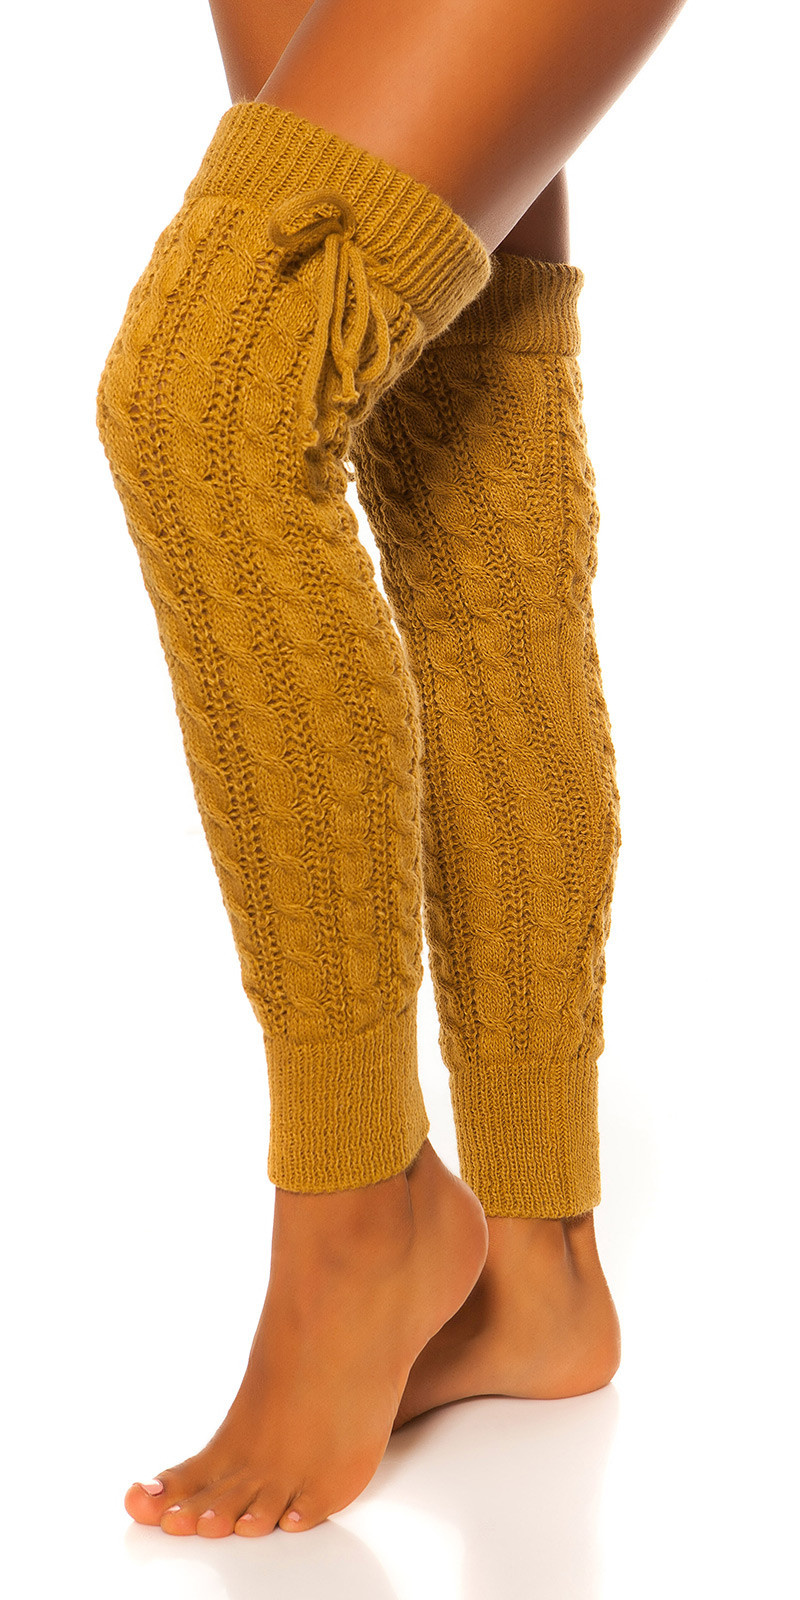 Sexy knit leg warmers with cable stitch pattern Mustard